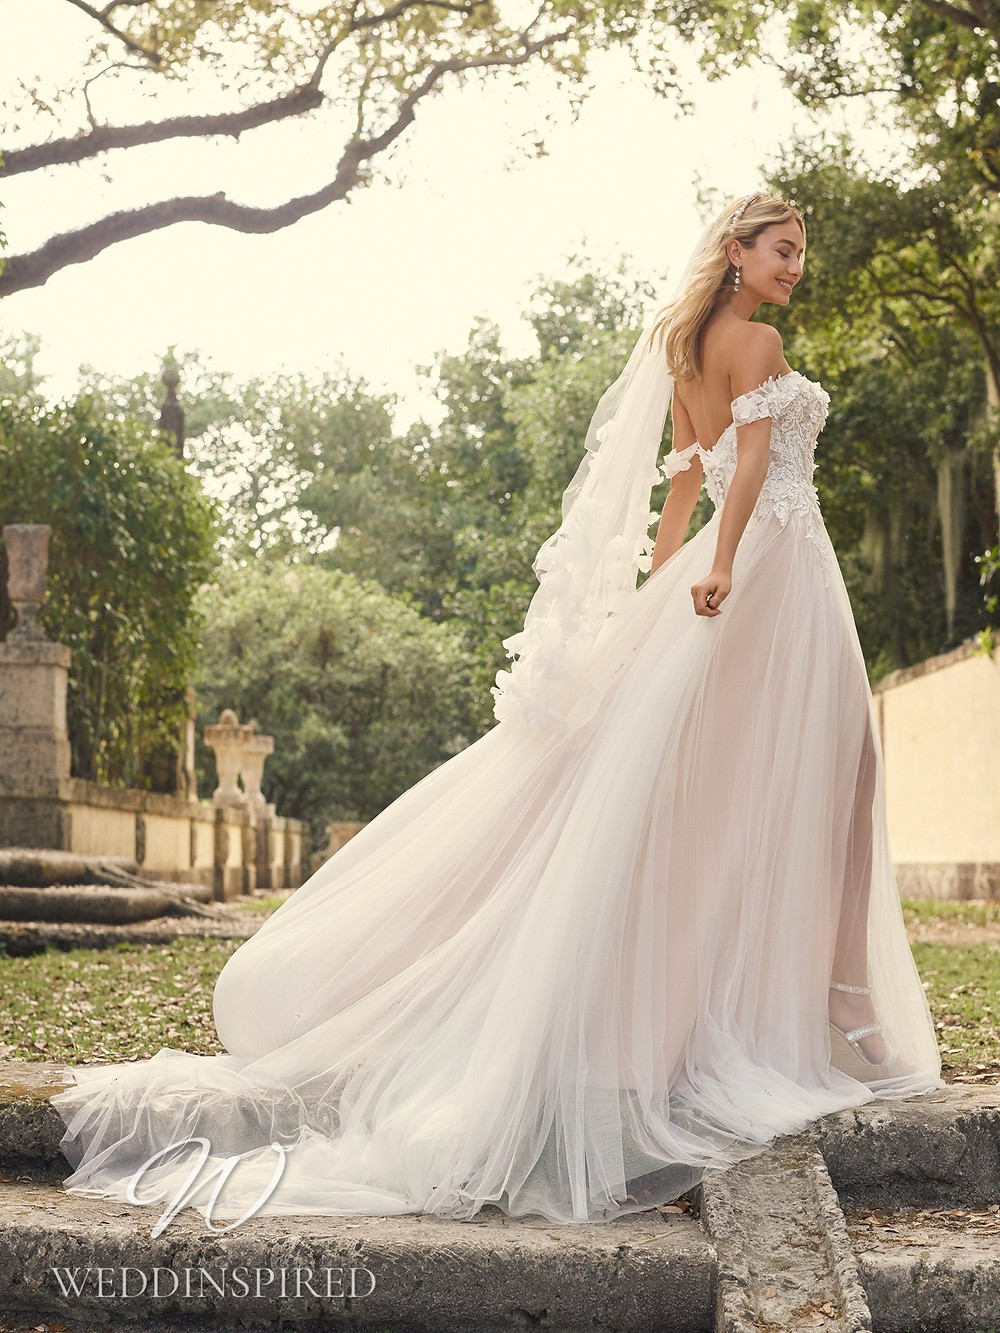 A Maggie Sottero 2021 off the shoulder lace and tulle A-line wedding dress